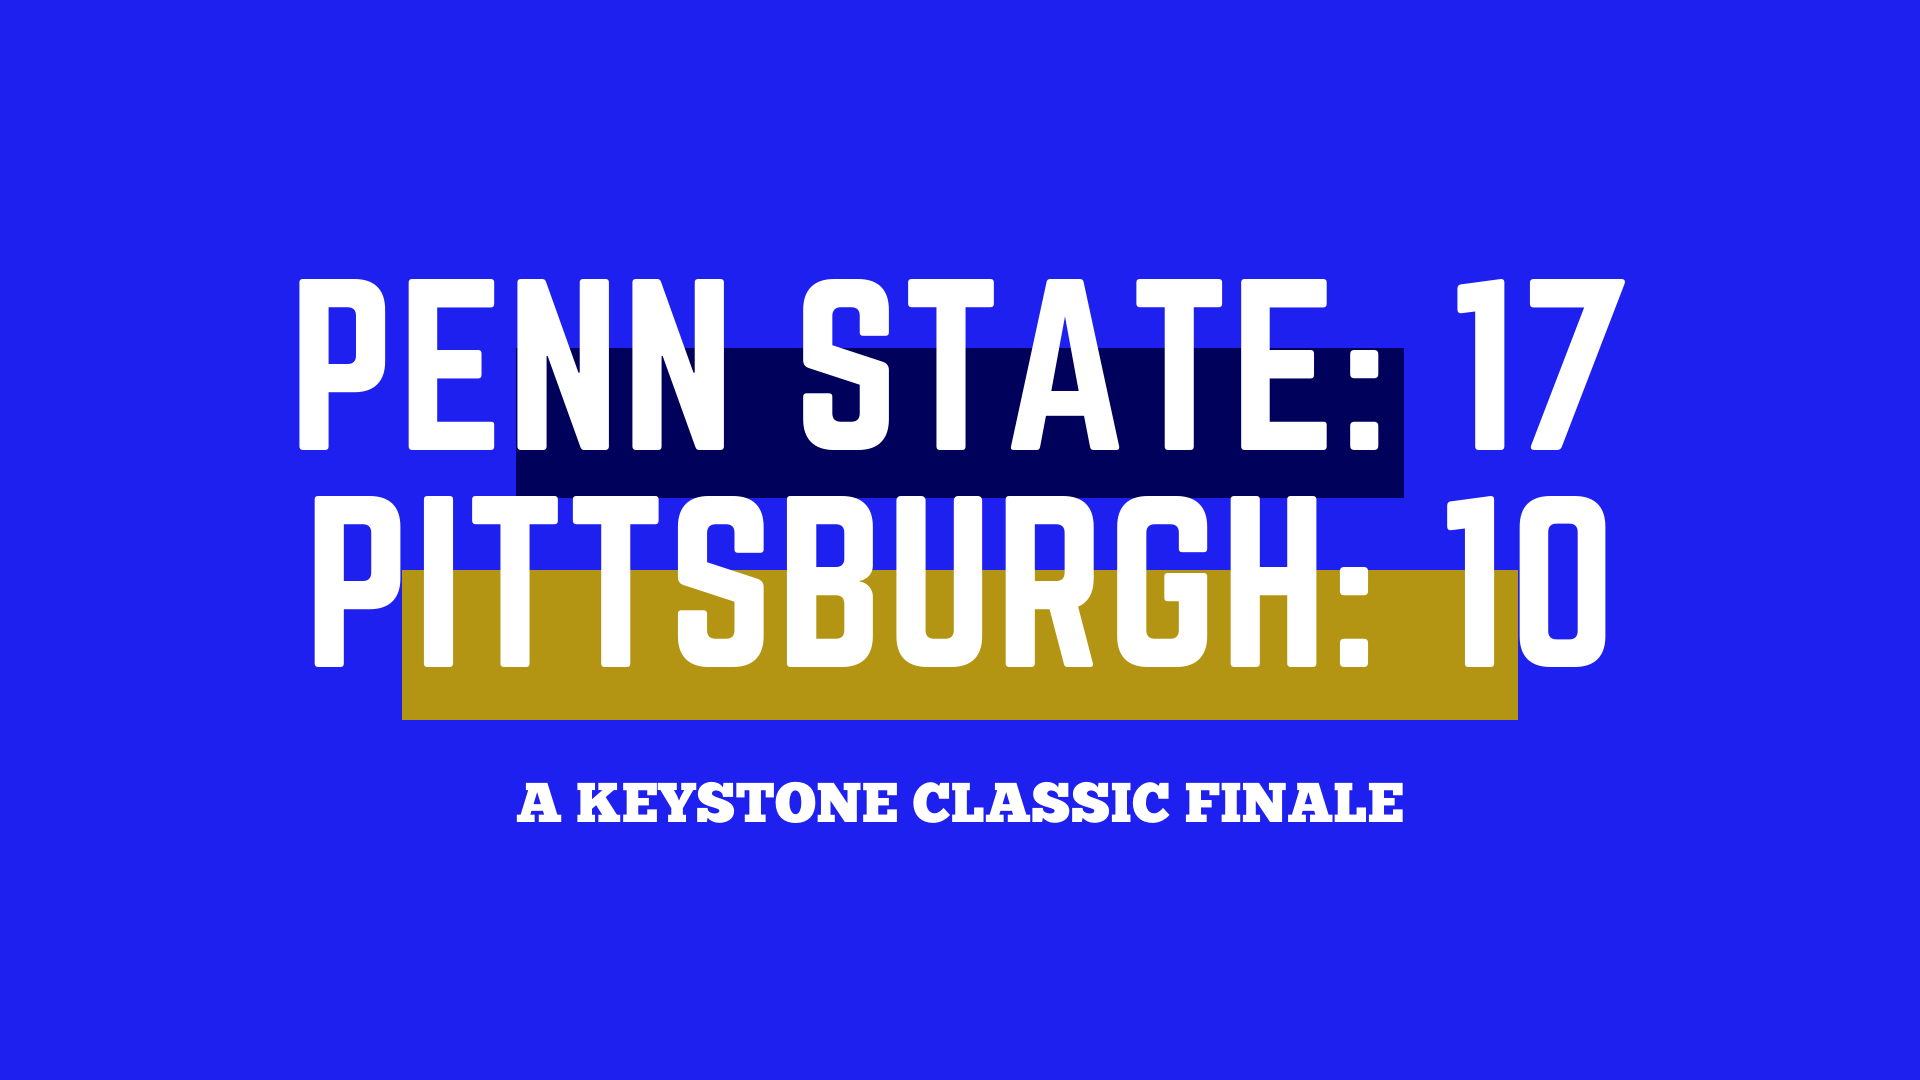 A Keystone Classic finale: 3 thoughts following Penn State's narrow victory over Pitt